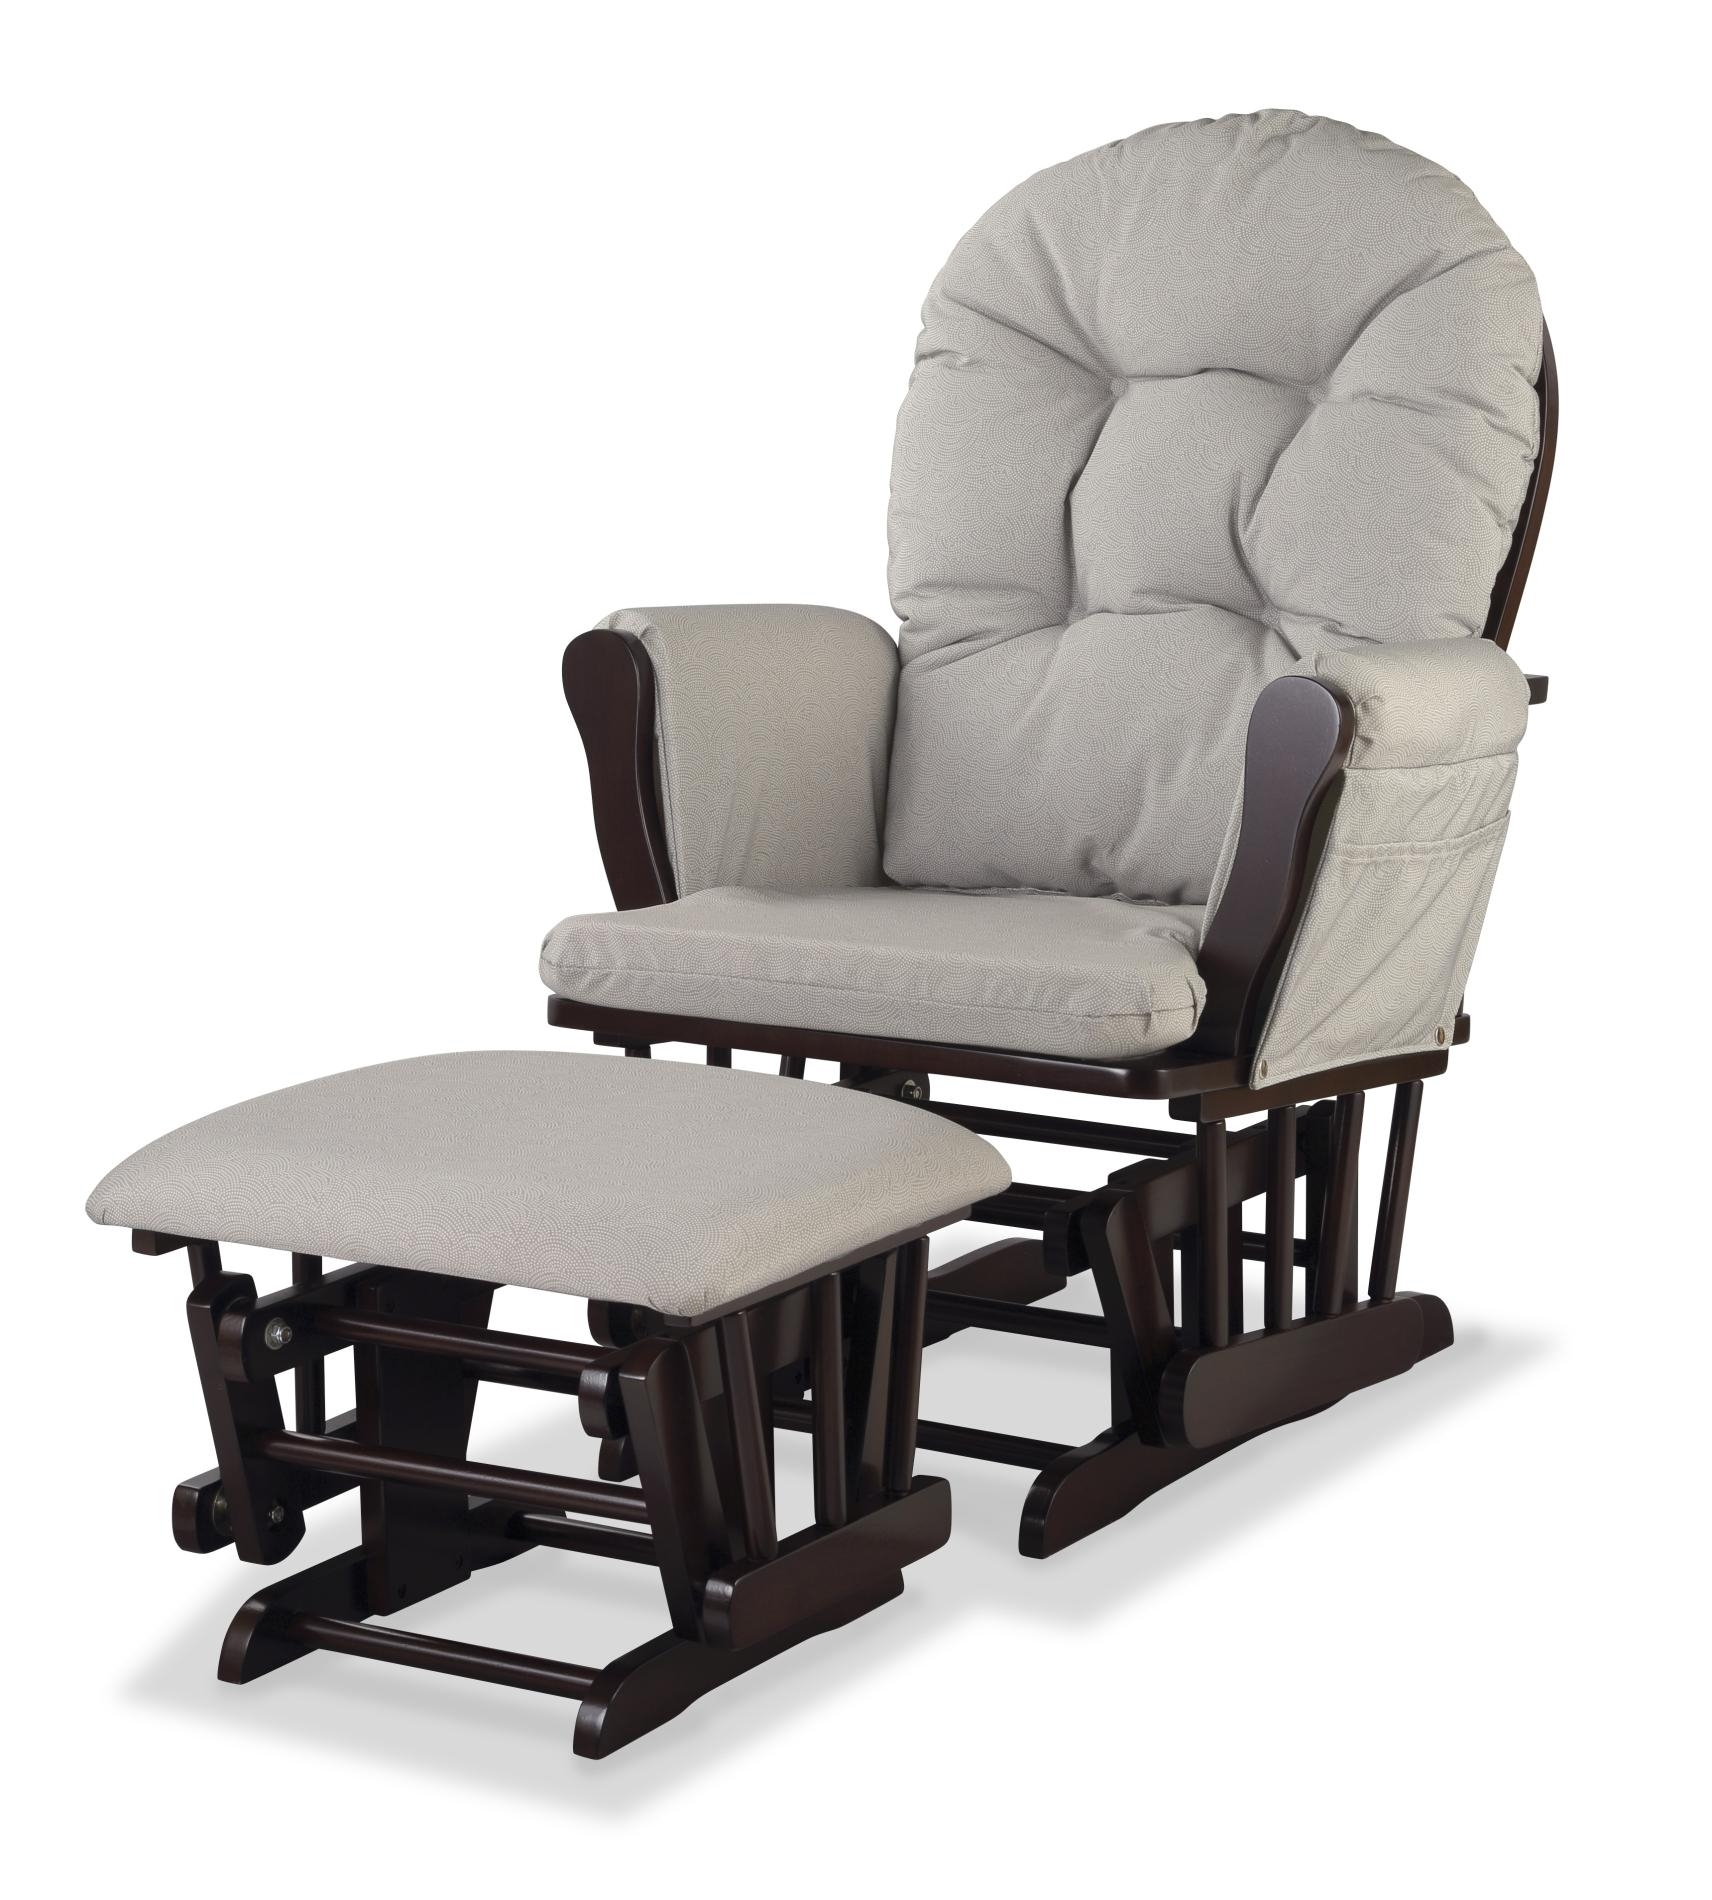 Trendy Poang Rocking Chair And Footstool – Kevinjohnsonformayor Inside Rocking Chairs With Footstool (View 4 of 20)